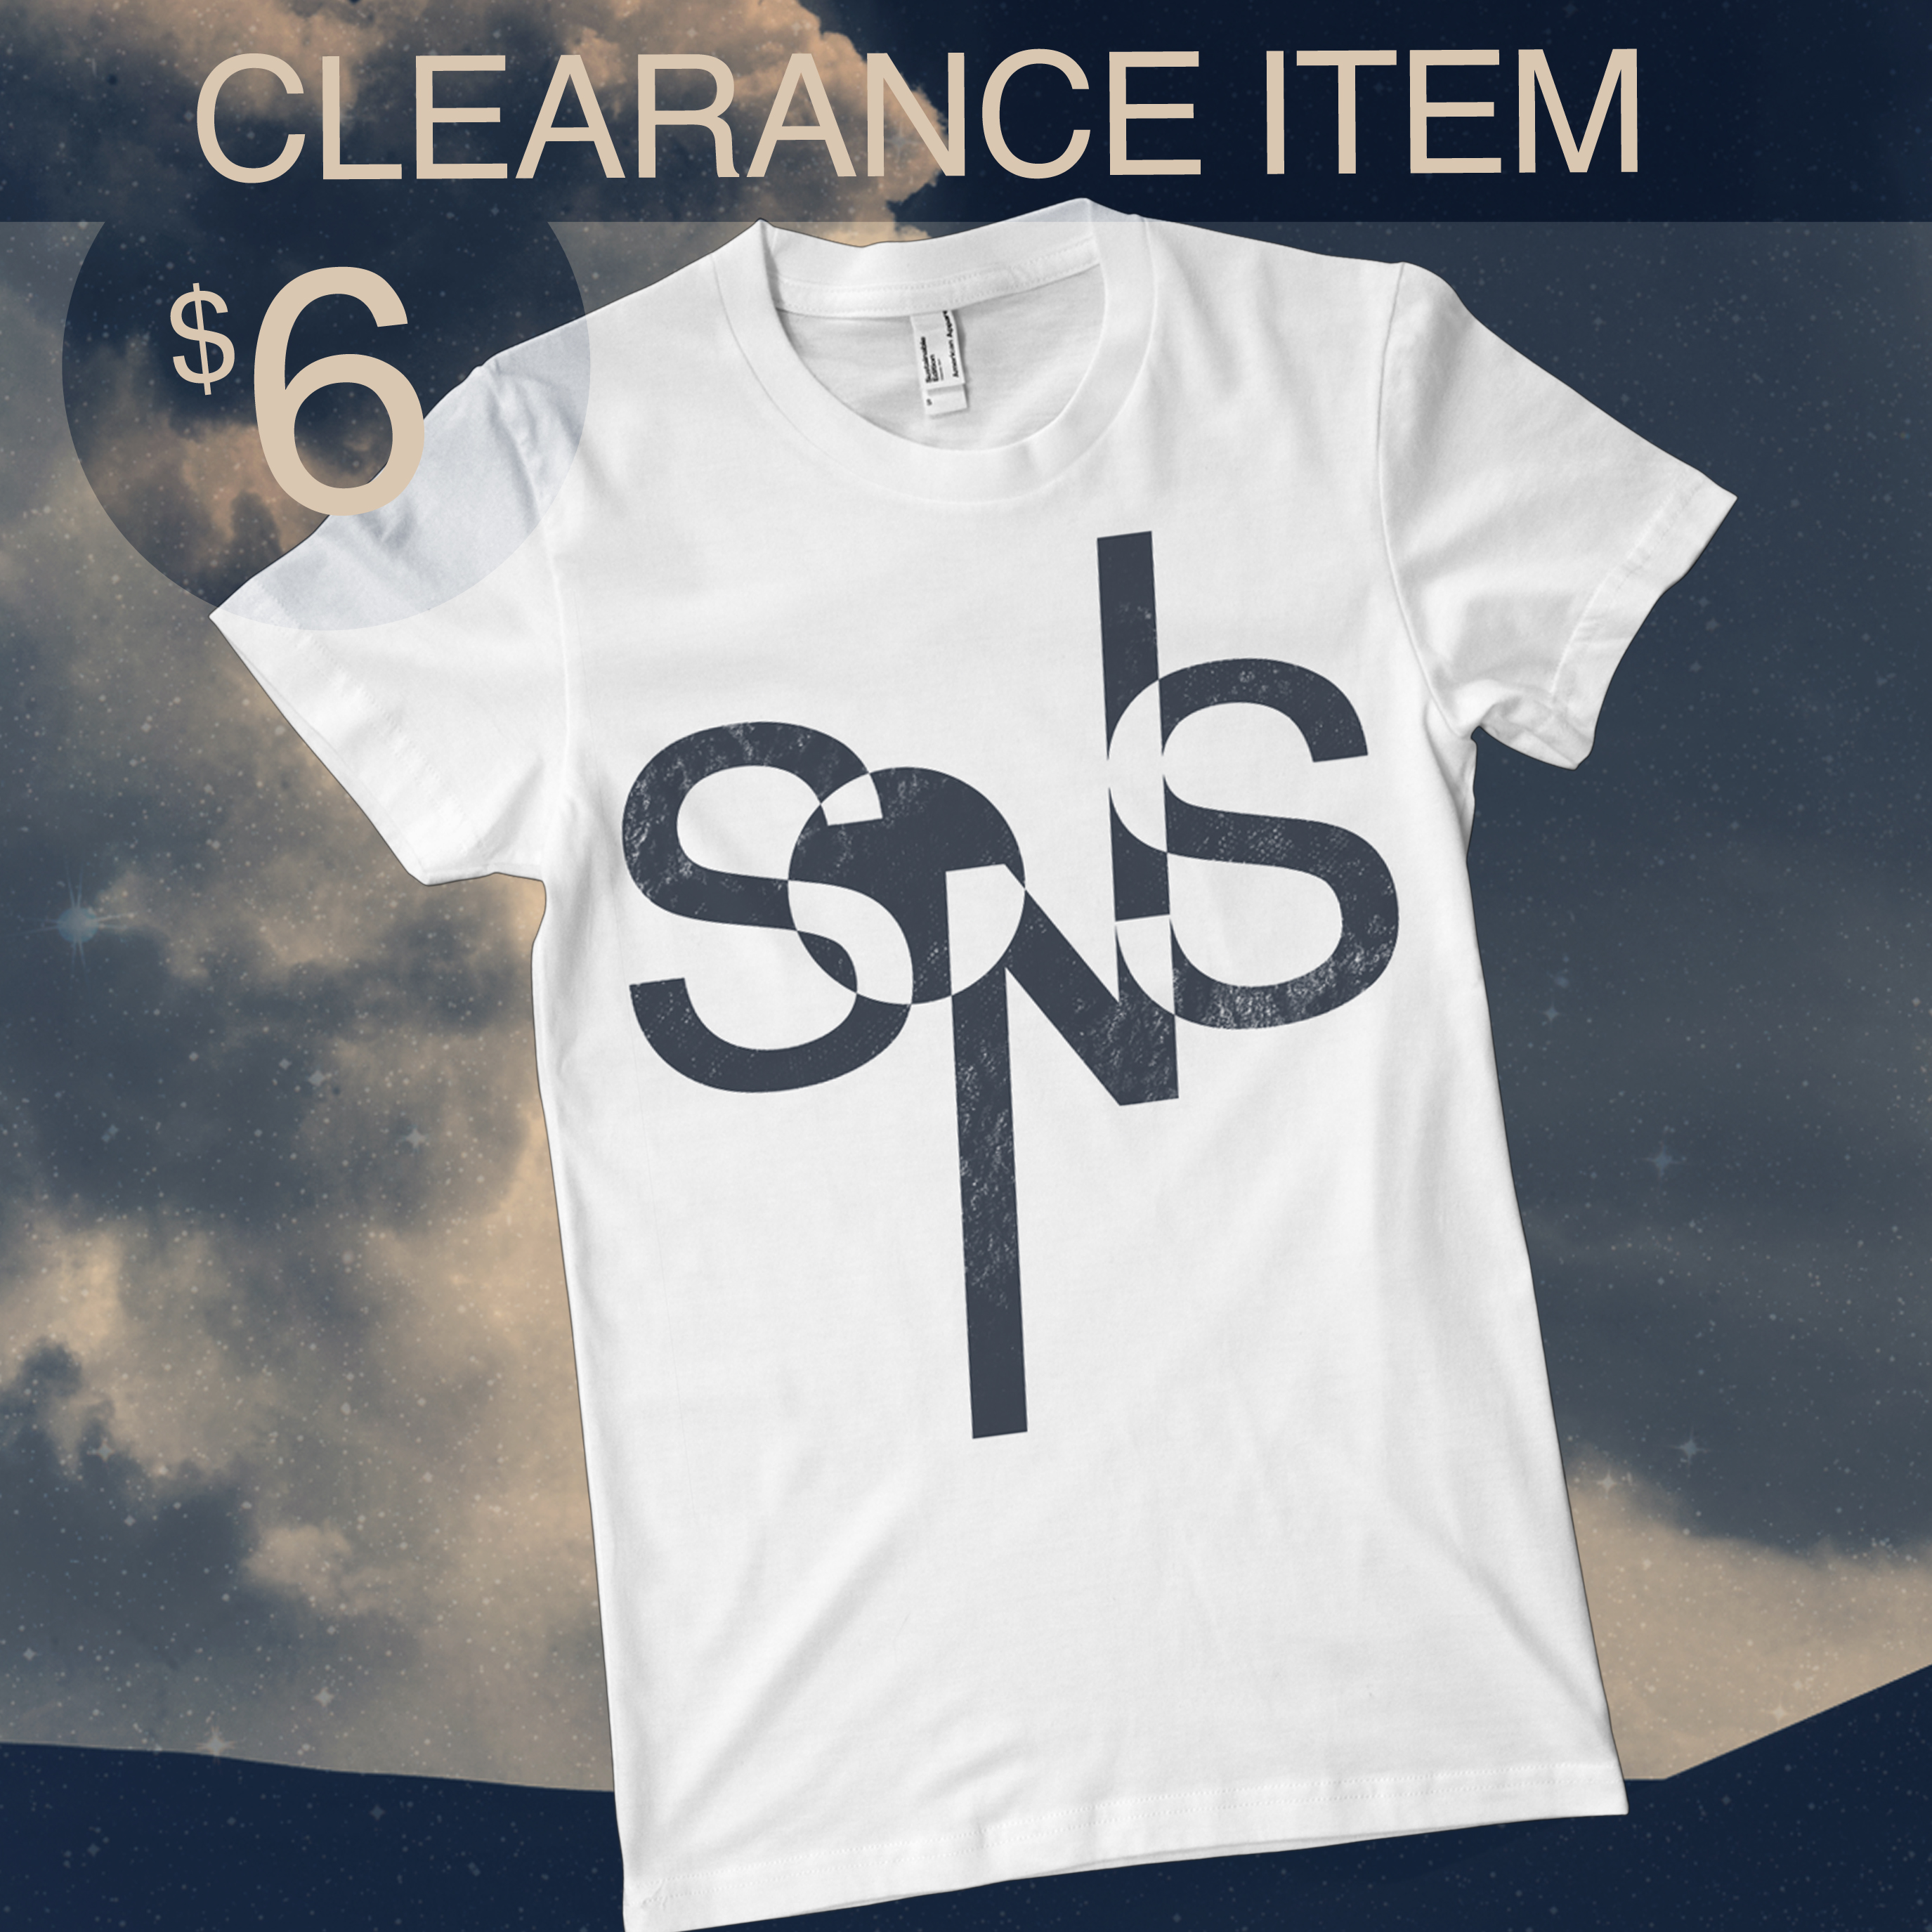 White_20sons_20shirt_20clearance_20item_original